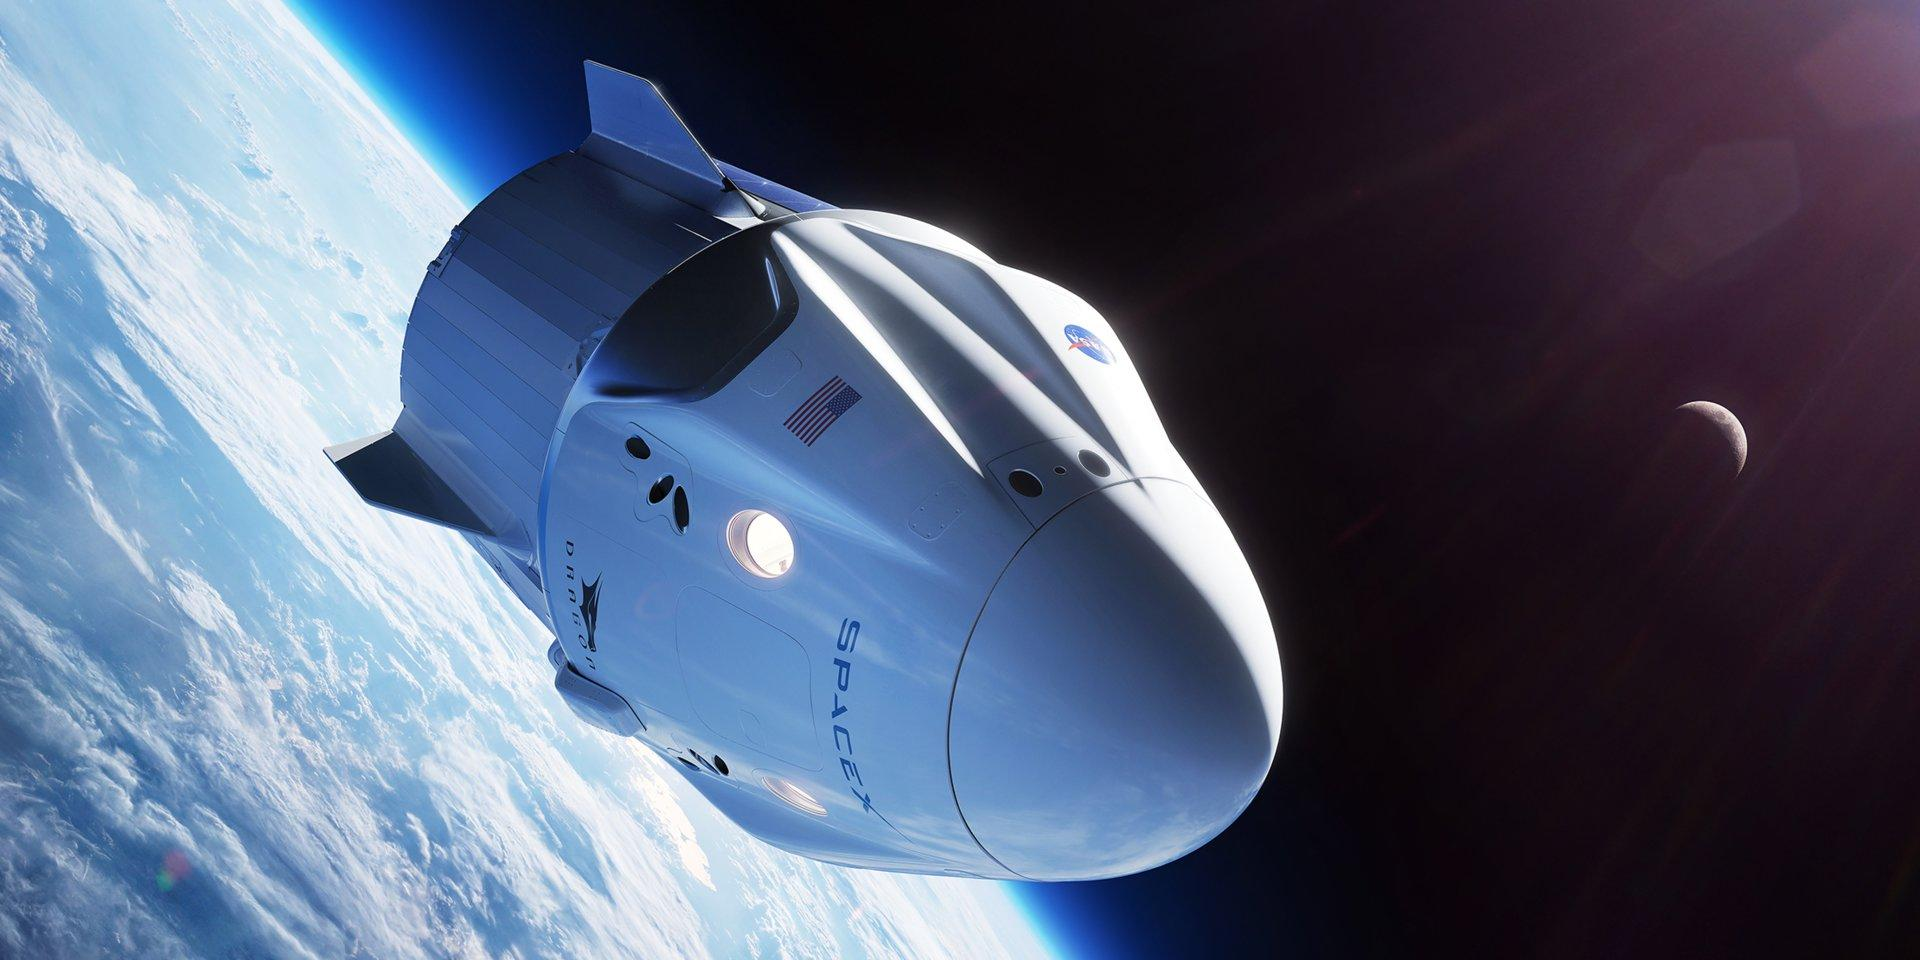 dragon spacecraft video - HD 1920×960